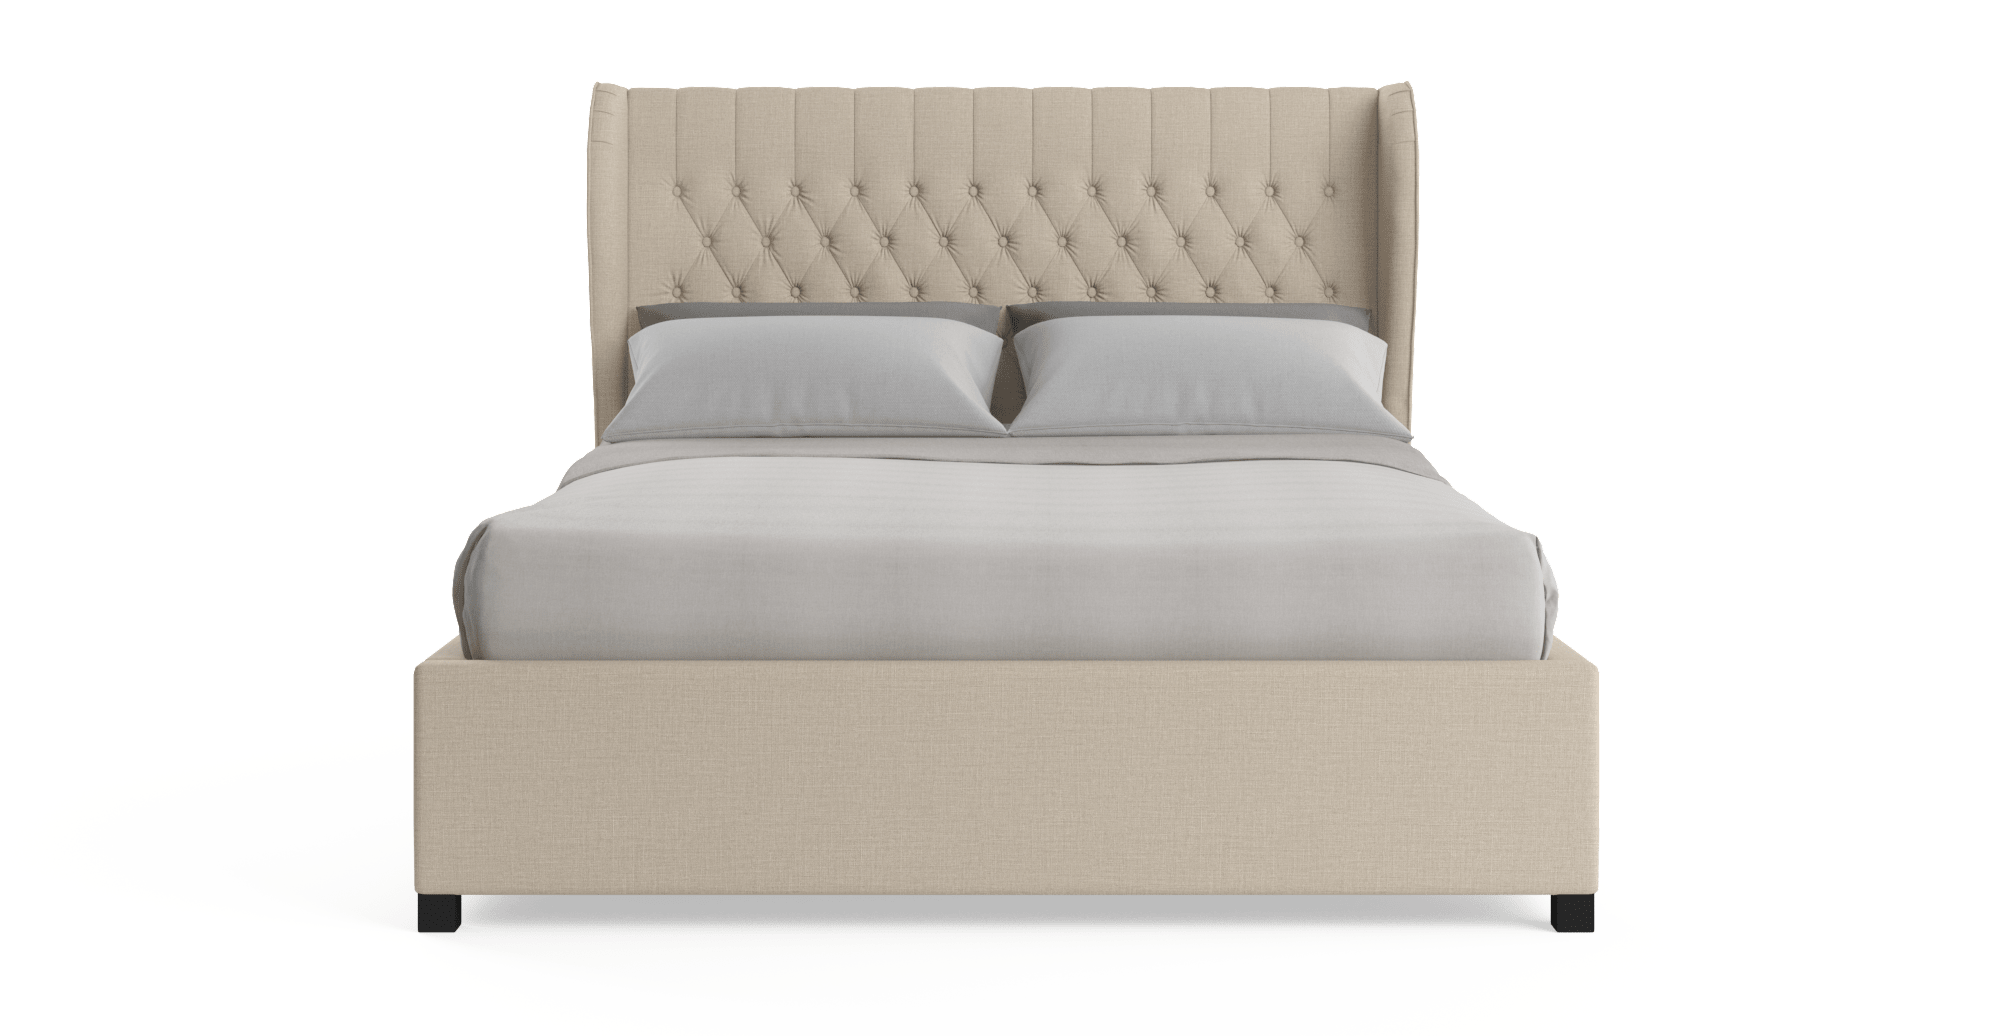 Buy Anica Gas Lift Queen Size Bed Frame Online in Australia | BROSA